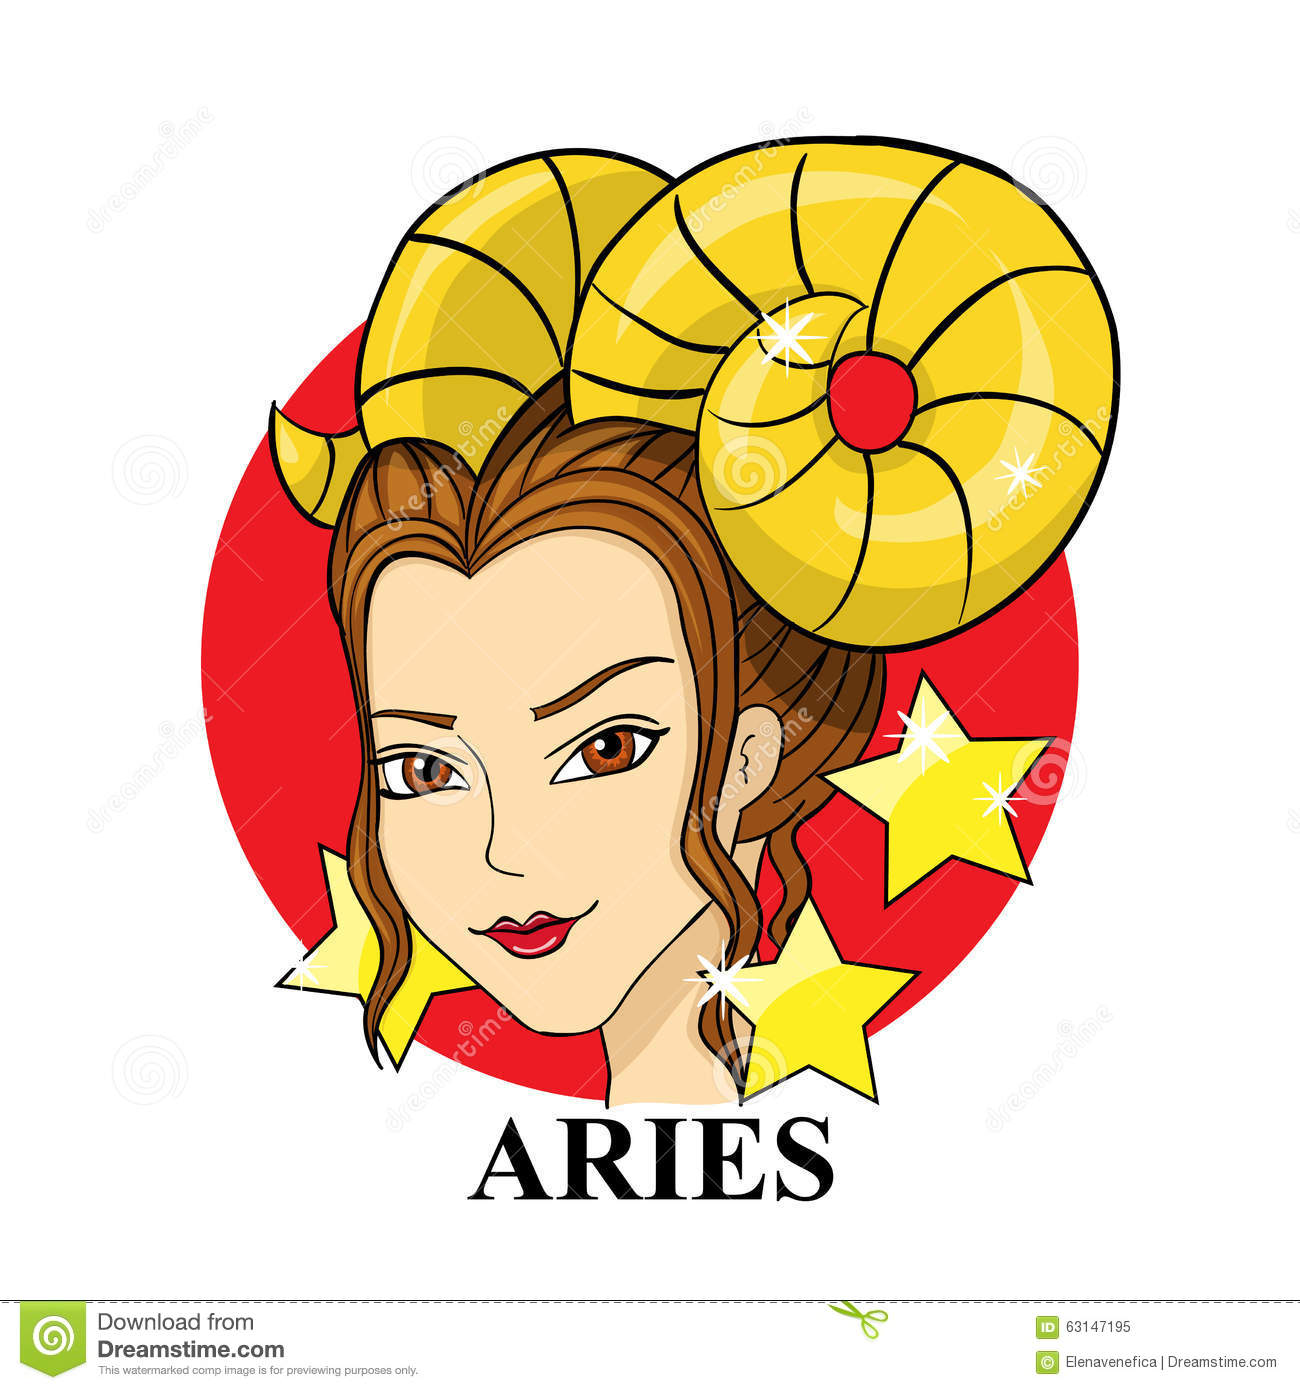 Tips on dating an aries man-in-Clevedon